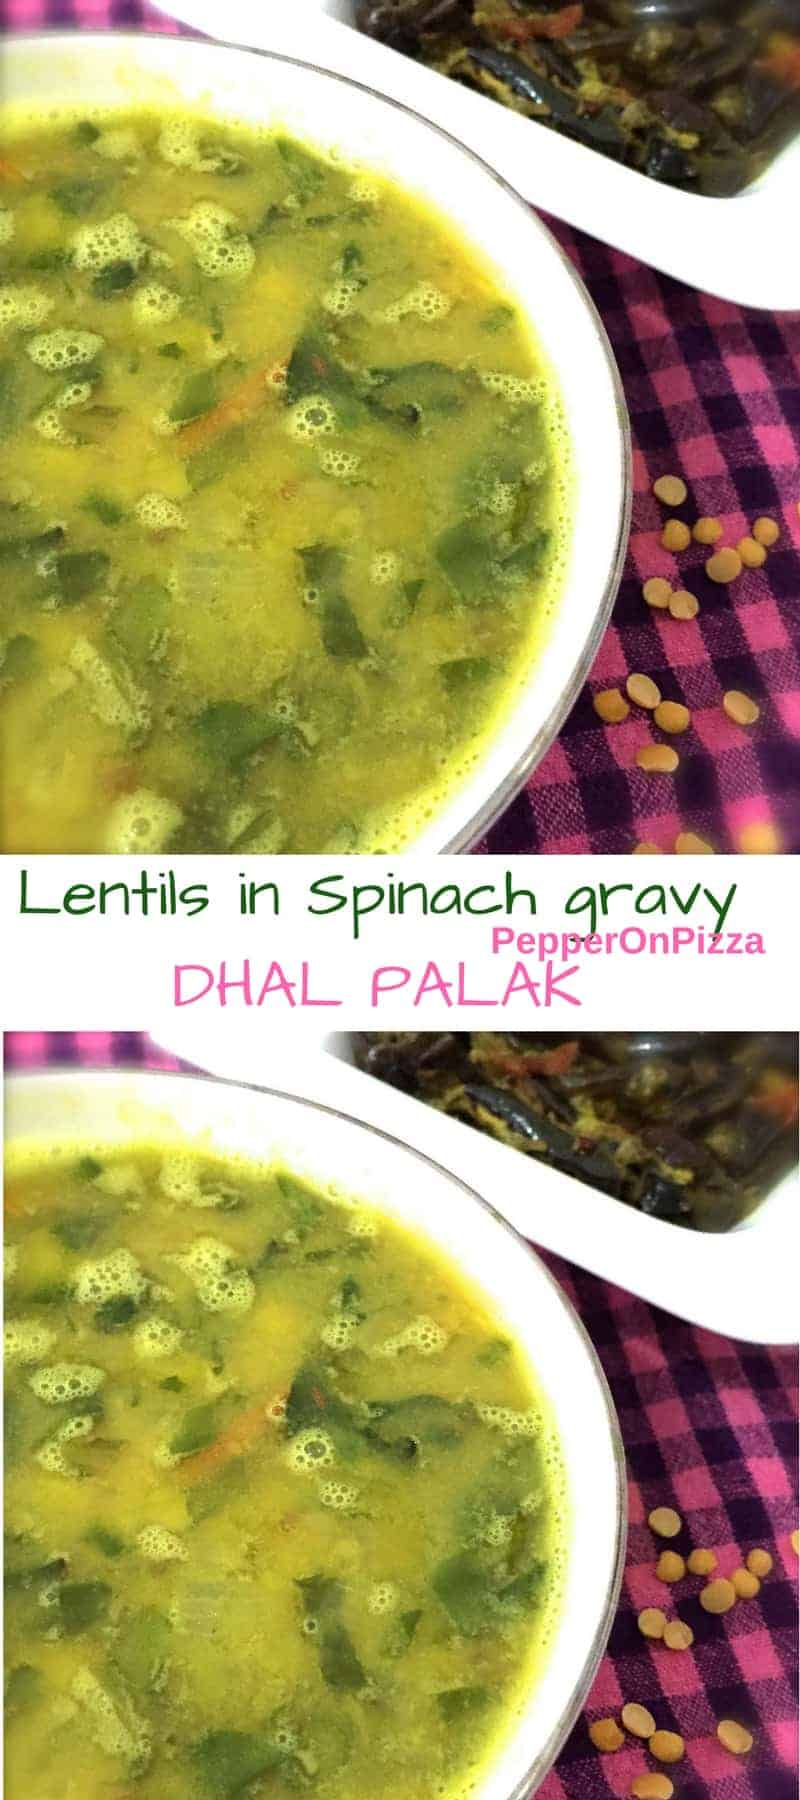 Nutritious lentil spinach stew-dhal palak_PepperOnPizza.com